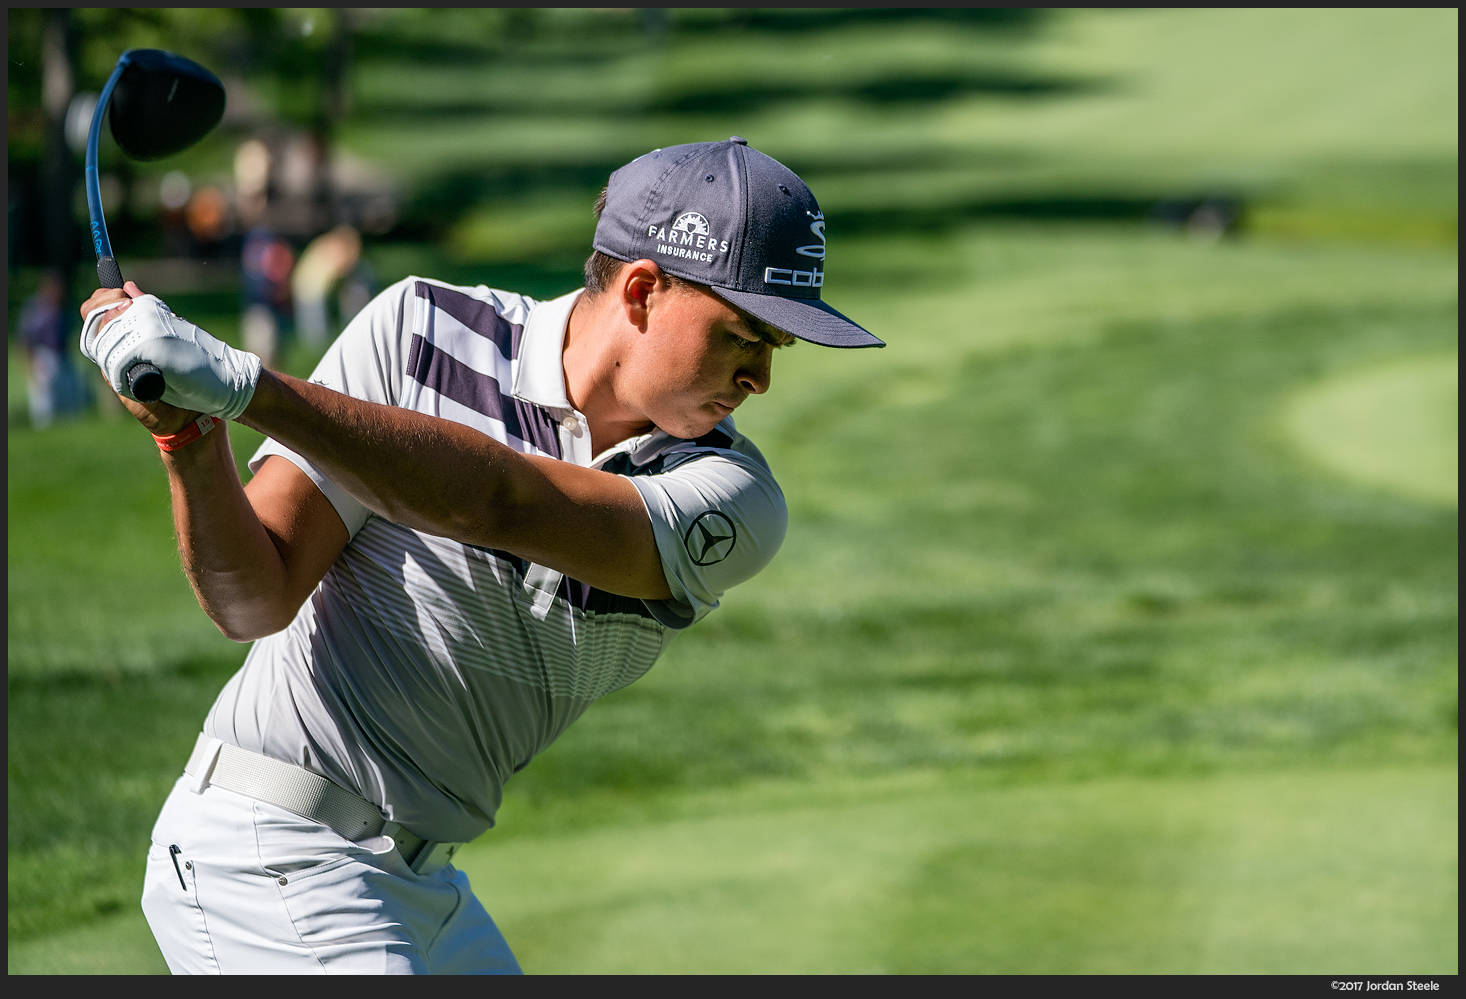 Ricky Fowler - Sony A9 with Sony FE 70-200mm f/2.8 GM @